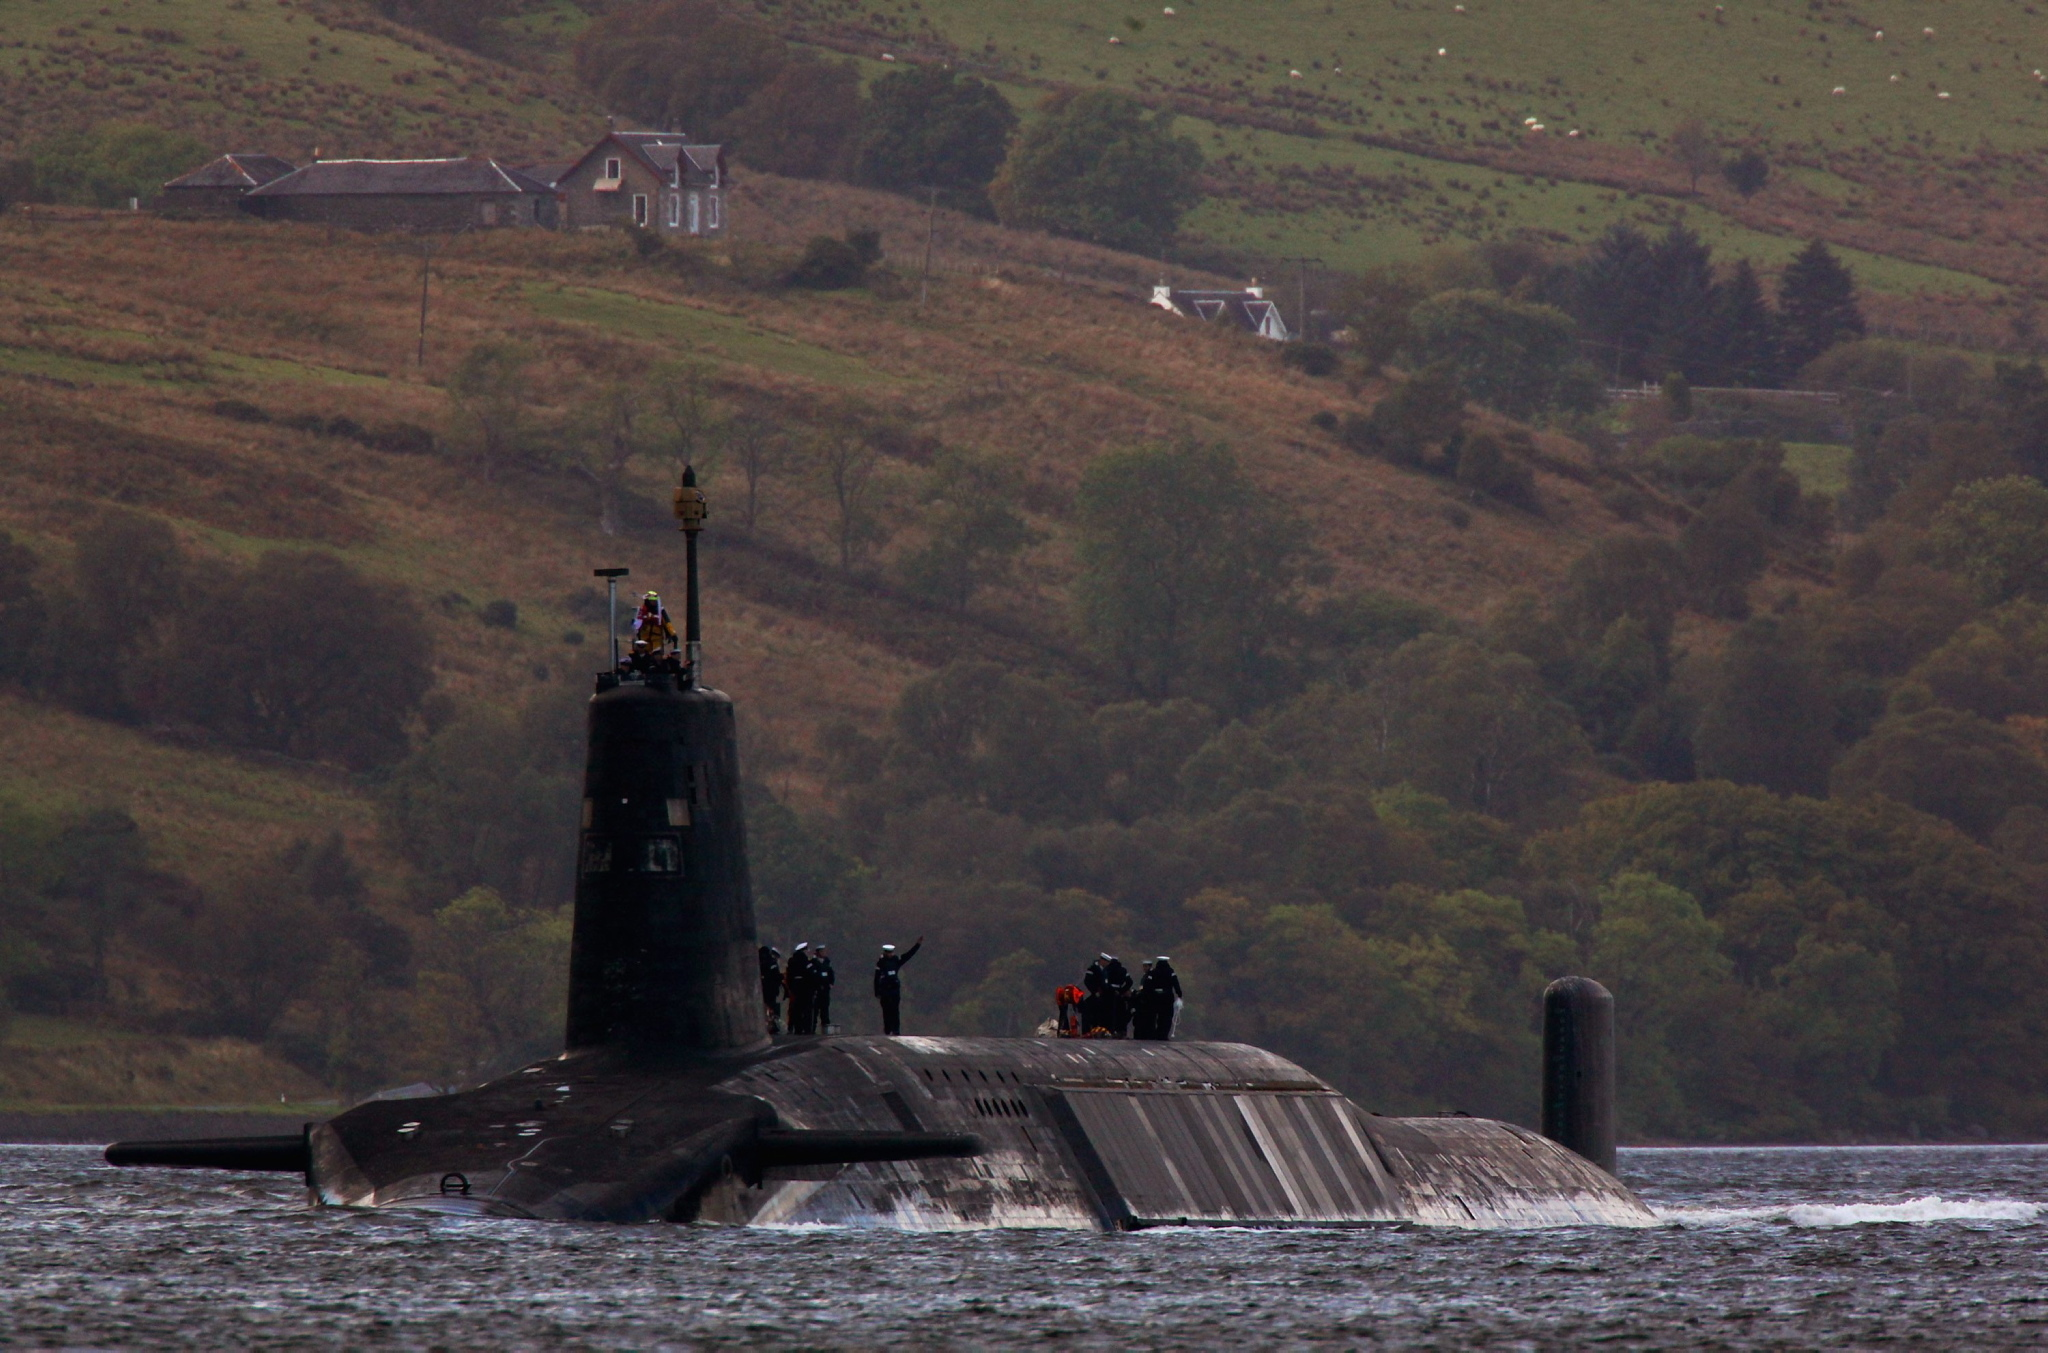 Sir Michael Fallon announces new £3.6m submarine training school on Clyde, which becomes UK's sub-hub from 2020